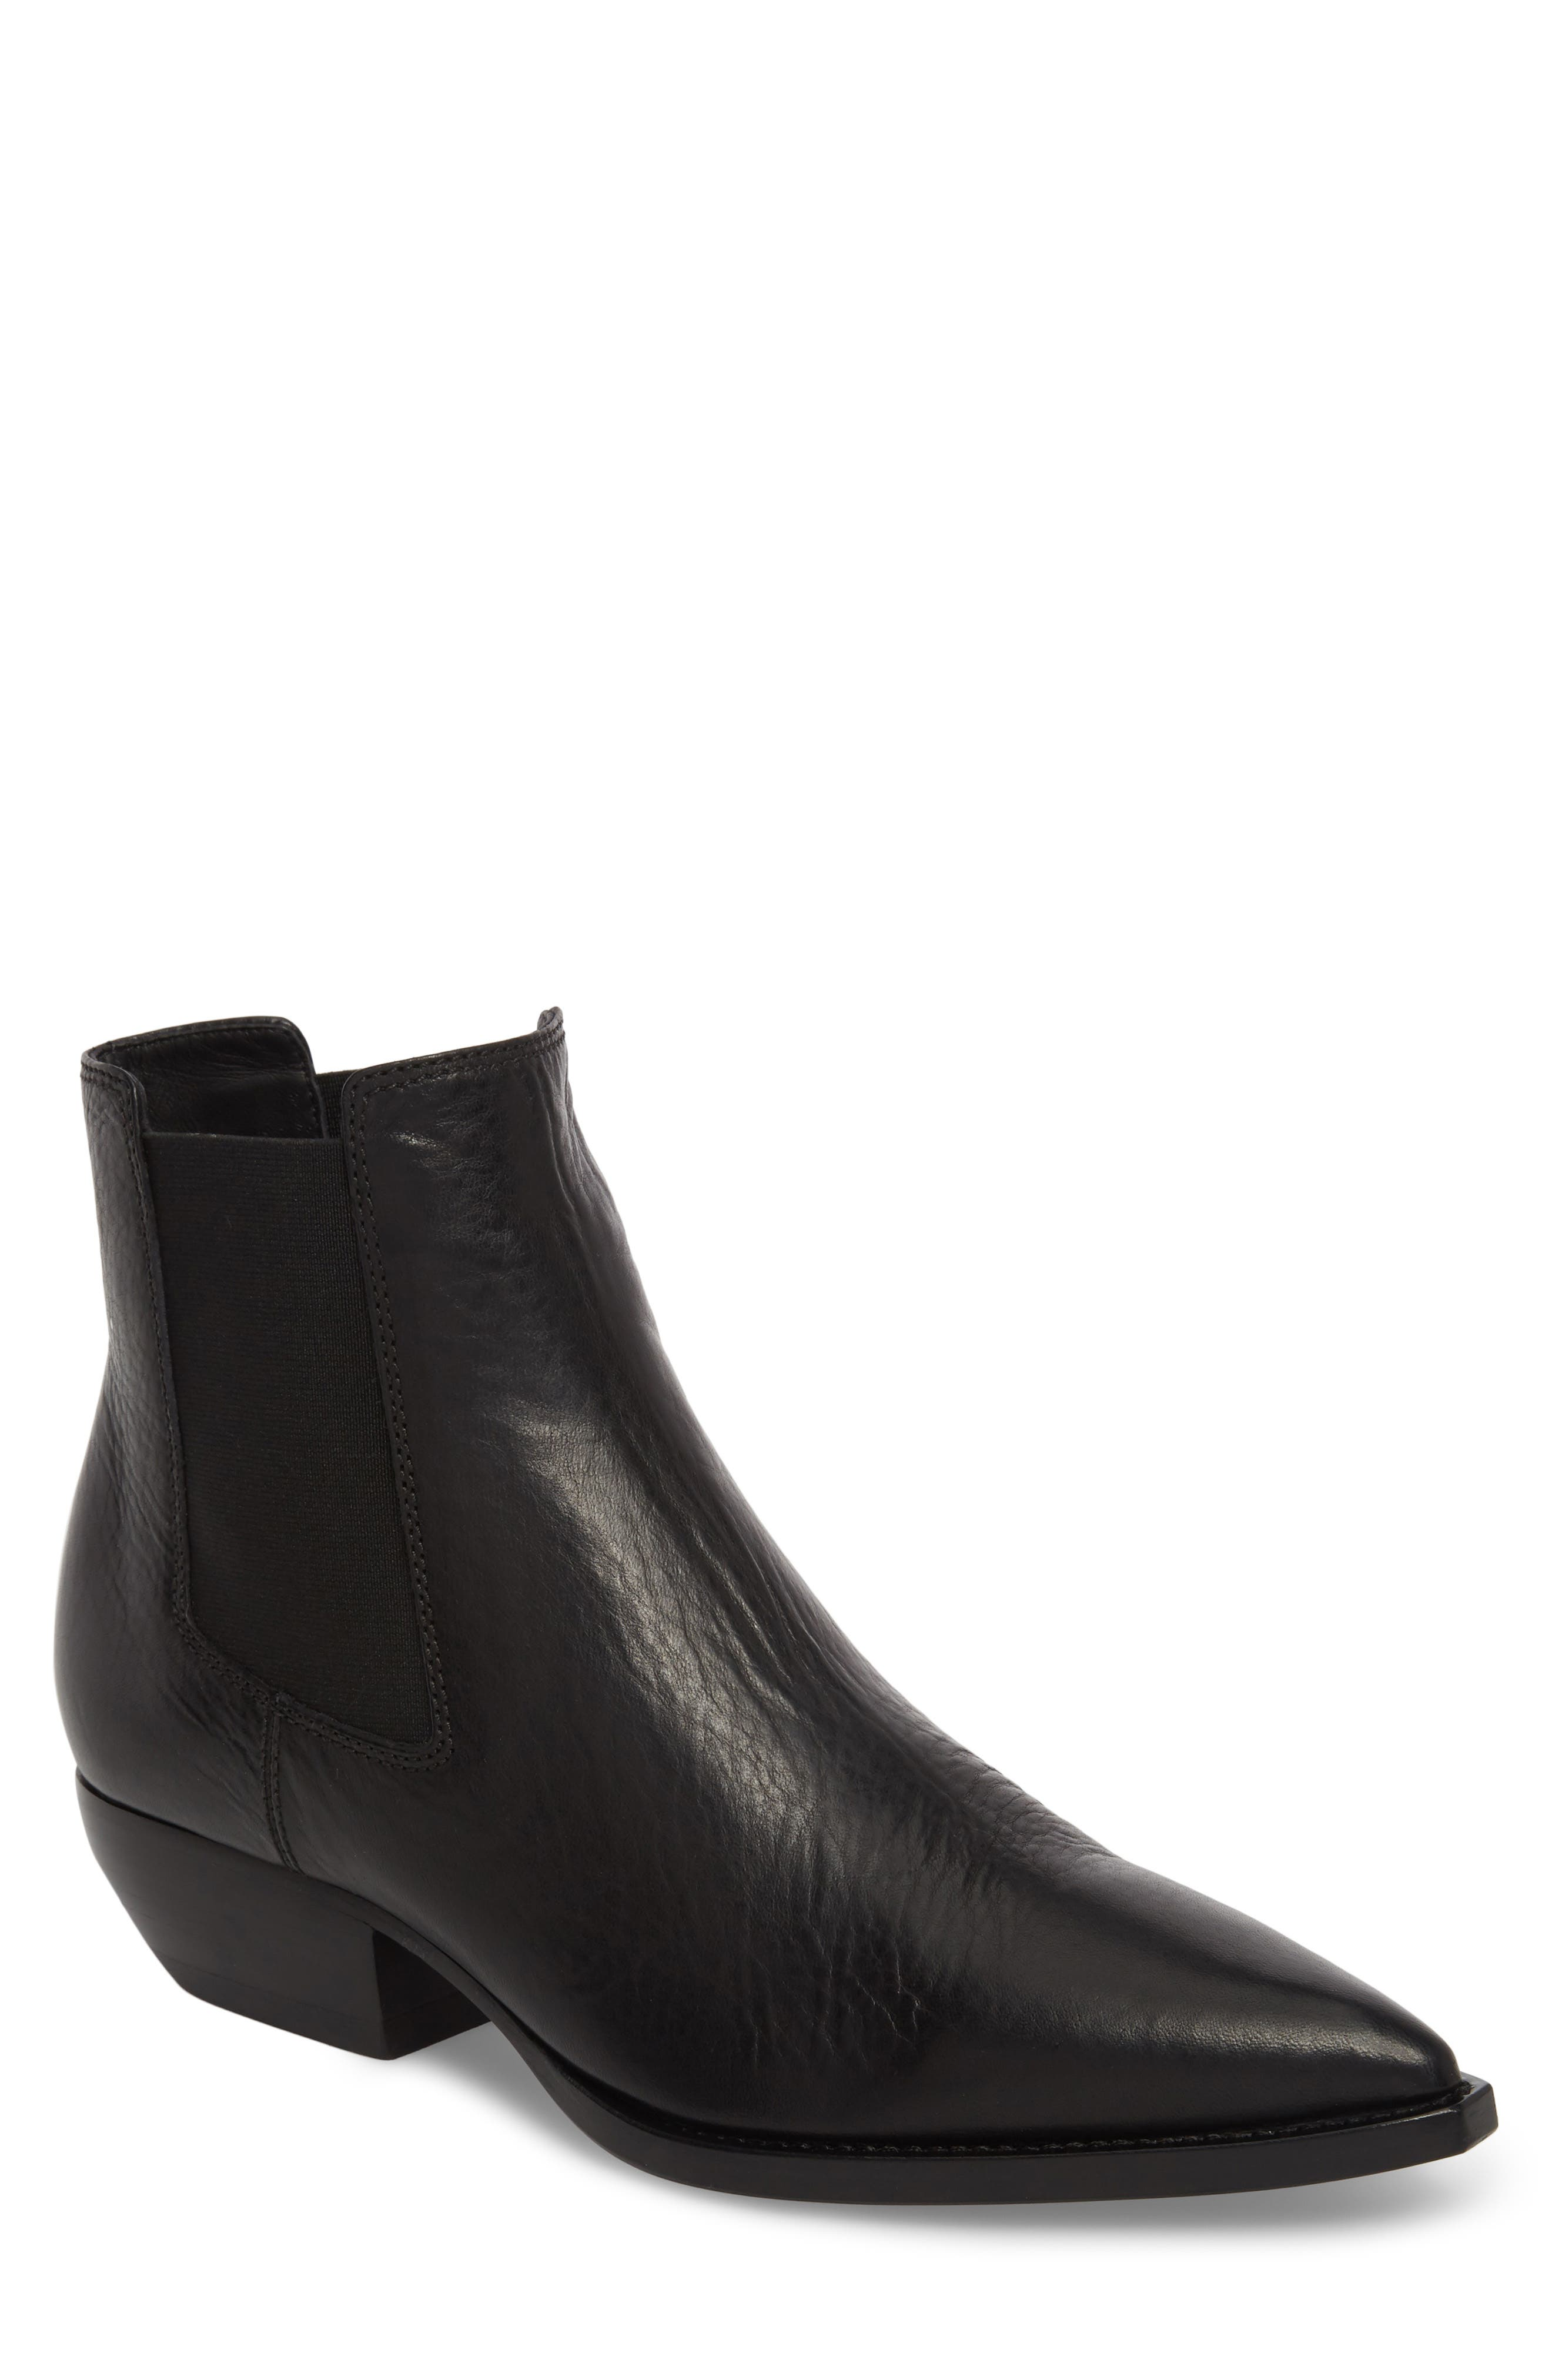 Theo 40 Chelsea Boot,                             Main thumbnail 1, color,                             Black Leather